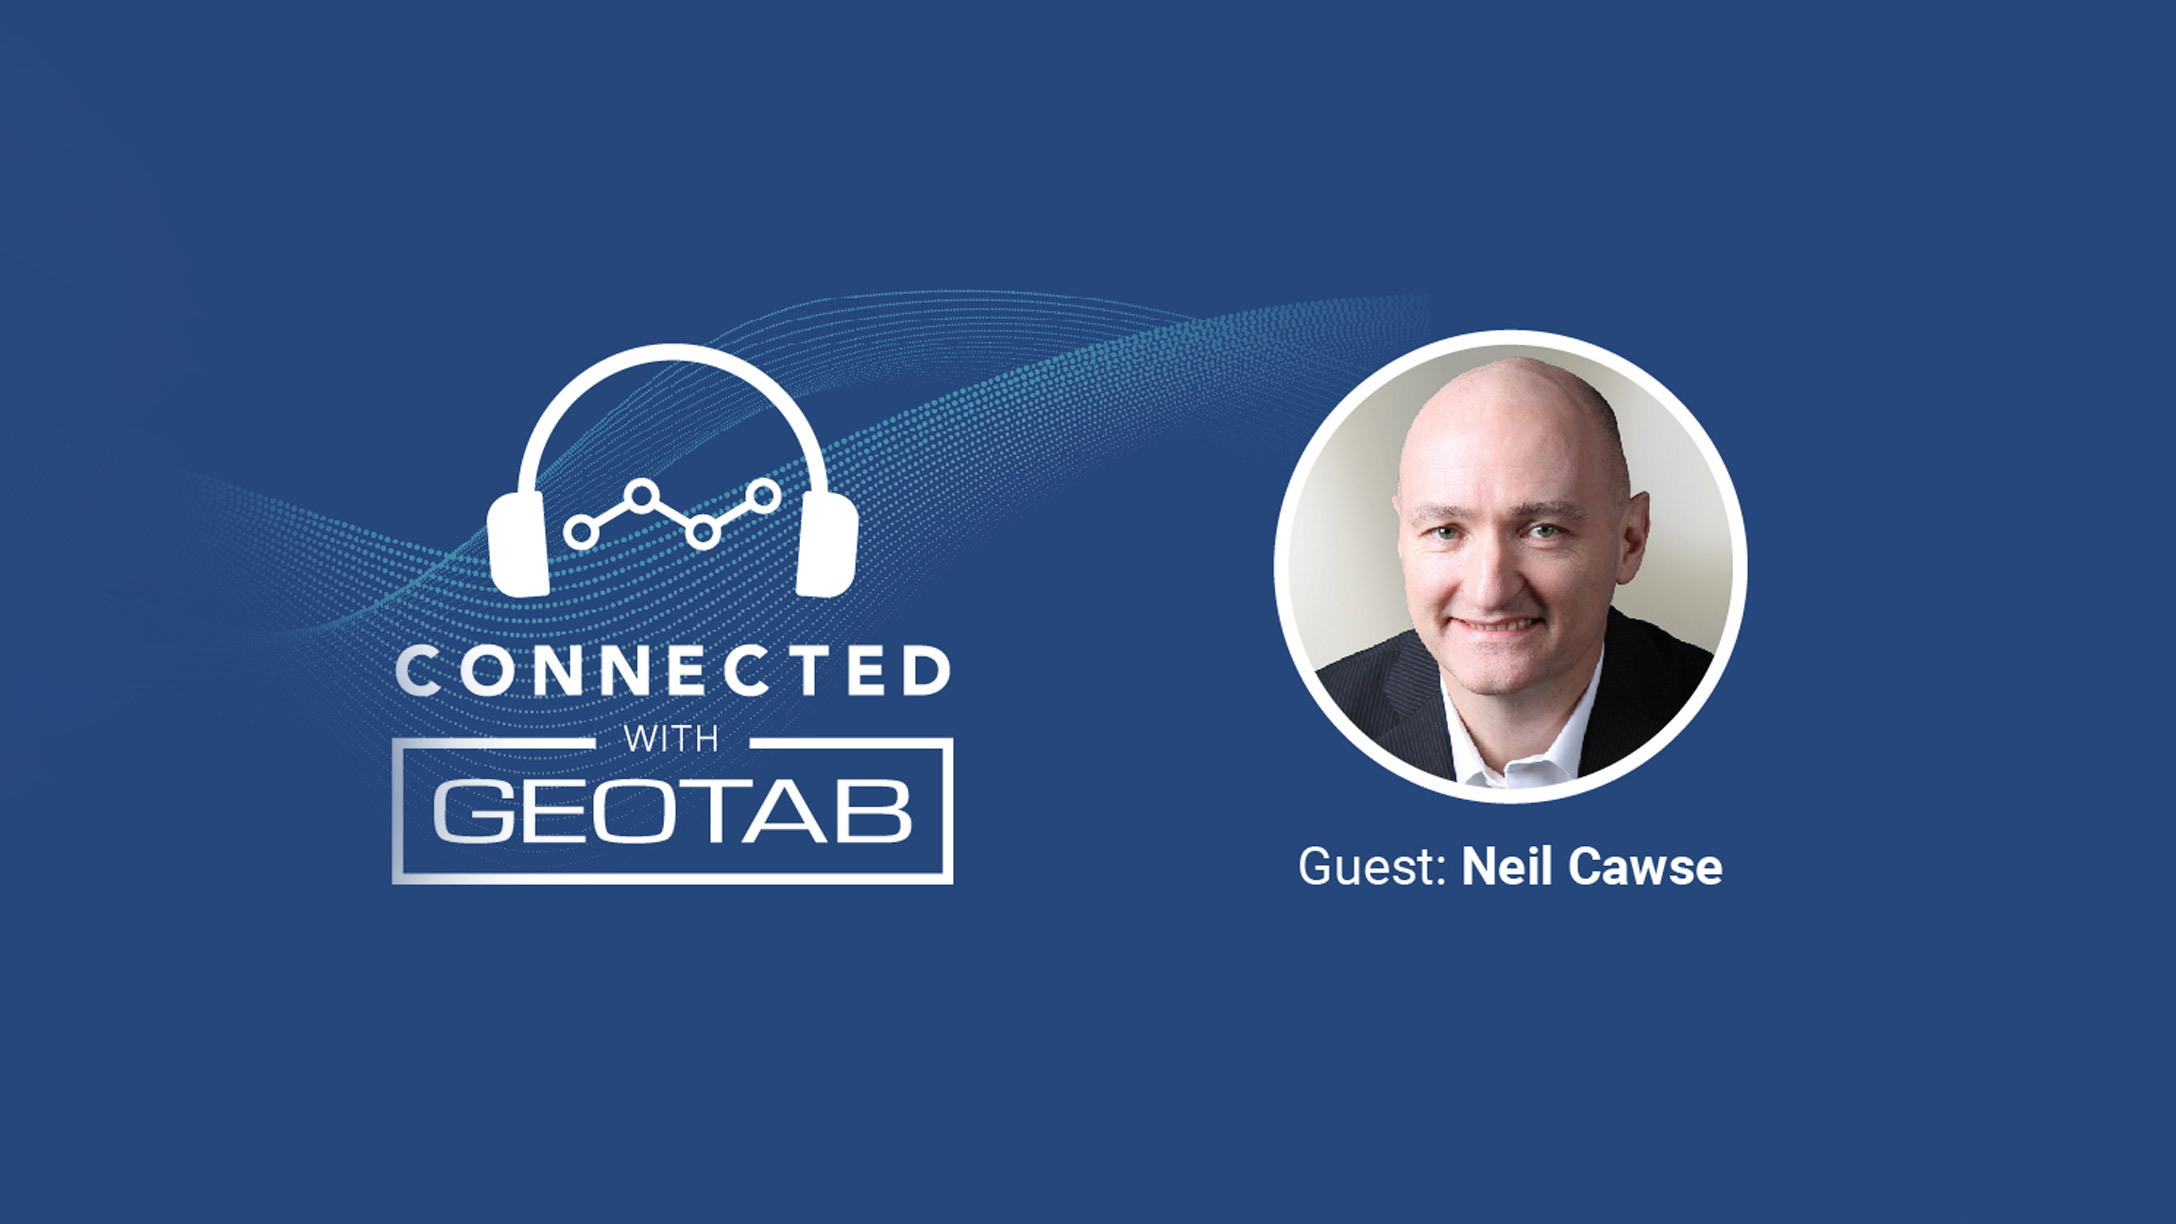 Behind the scenes at Geotab podcast